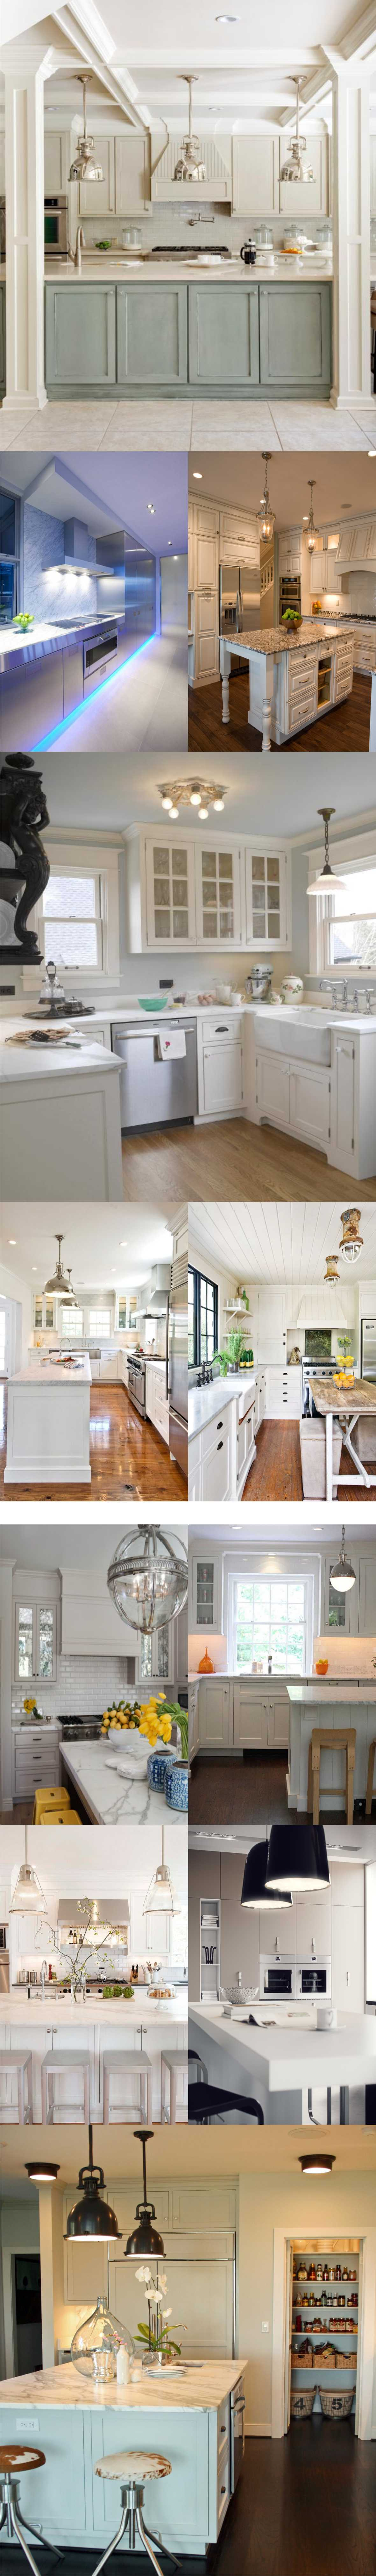 White kitchen with lighting 2018